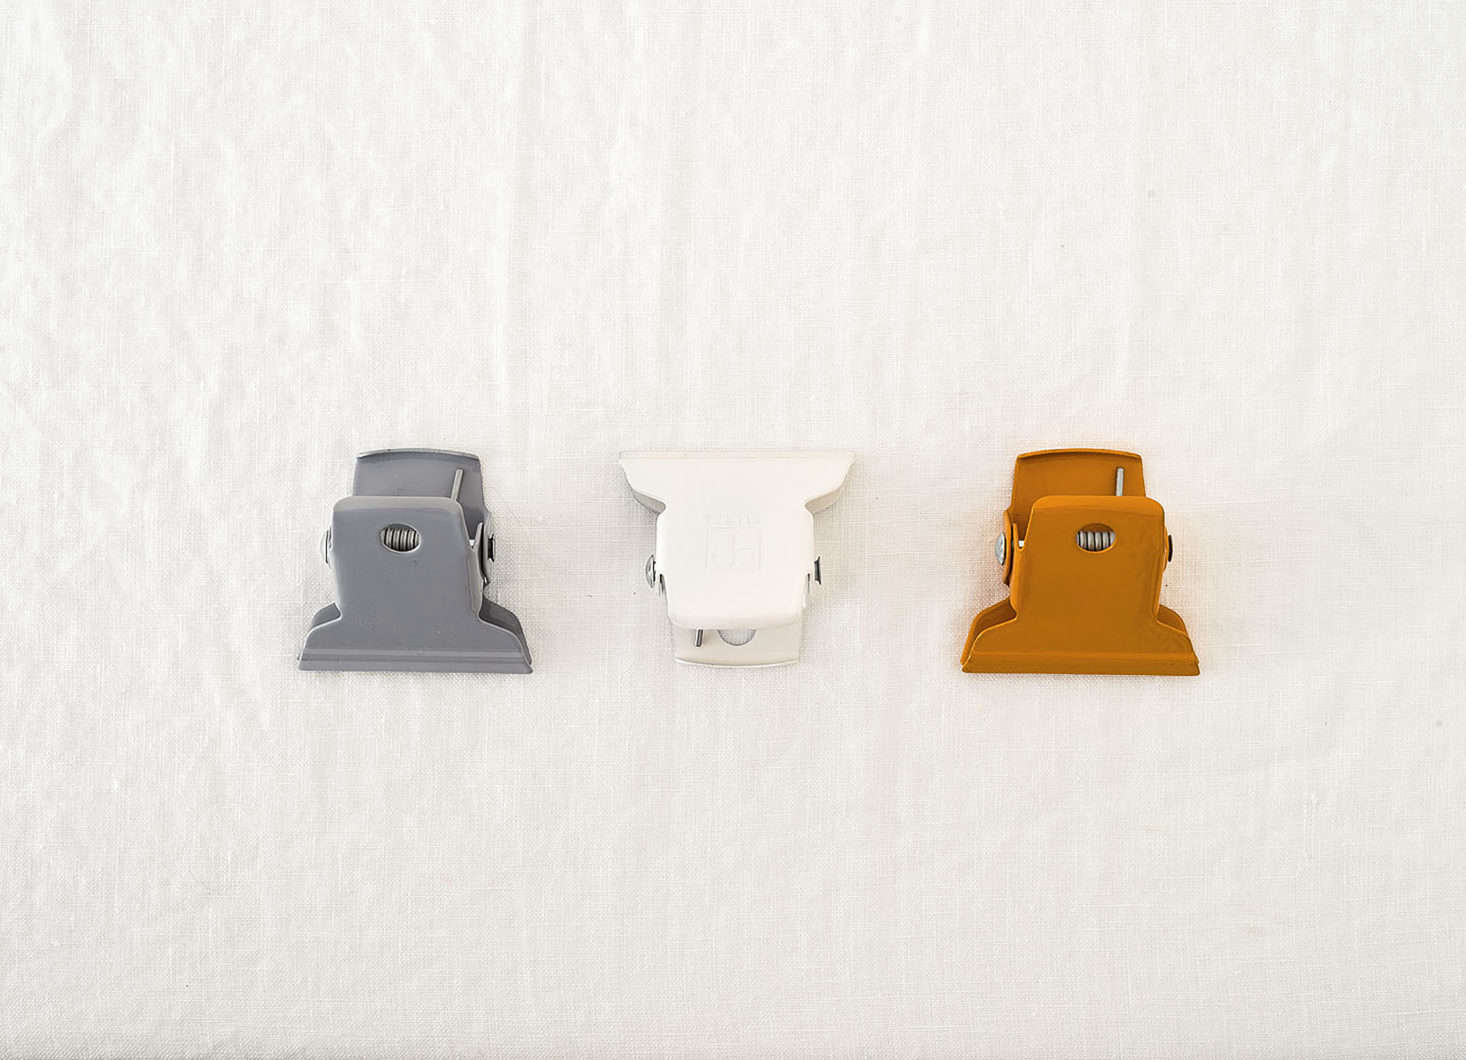 Ellepi Colored Metal Clips as part of the Remodelista Storage 75 Series